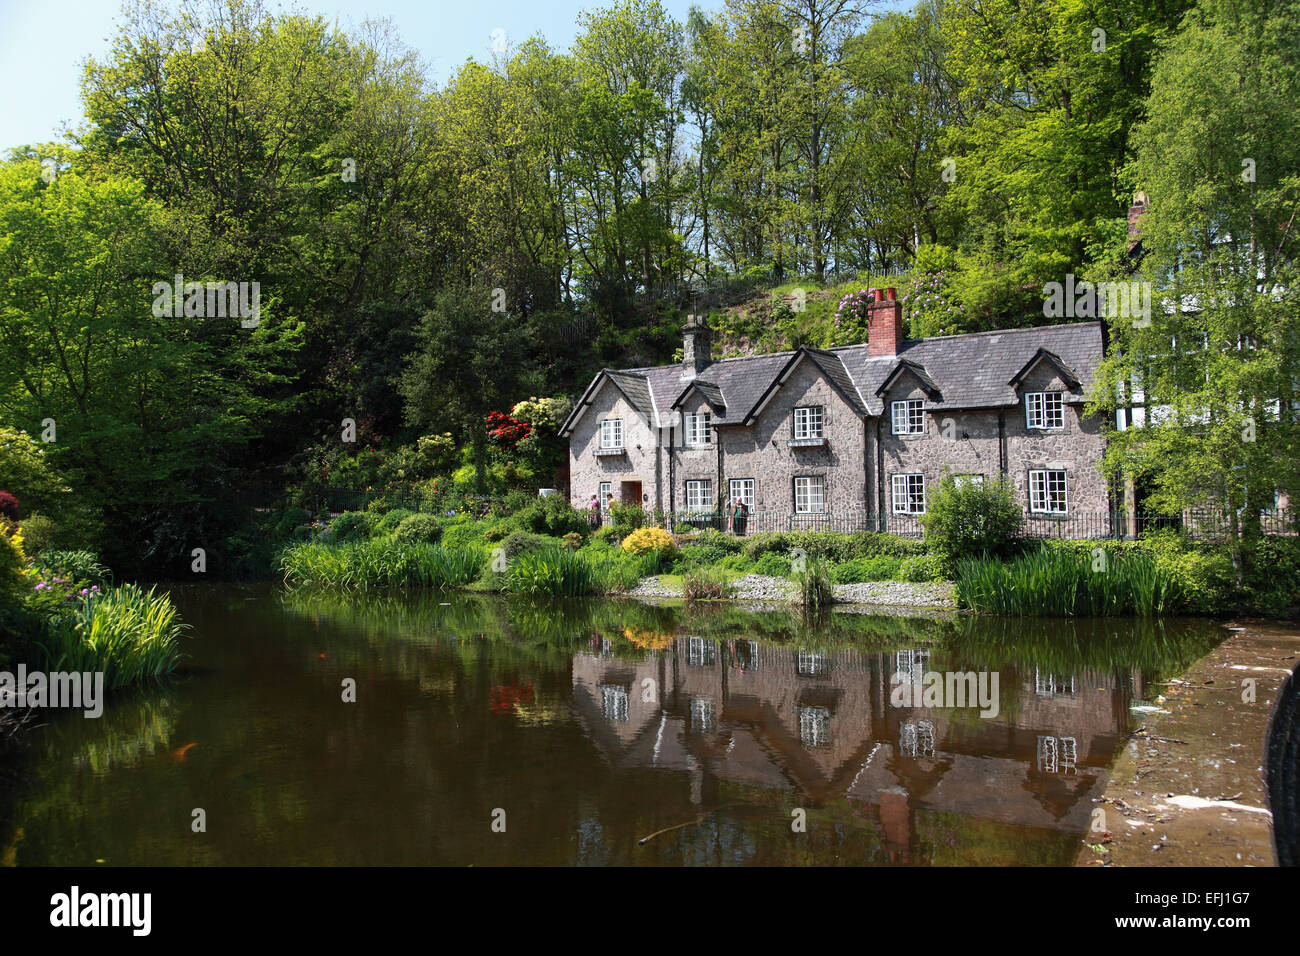 Looking across Lower Dam to the Dingle in Lymm, Cheshire - Stock Image